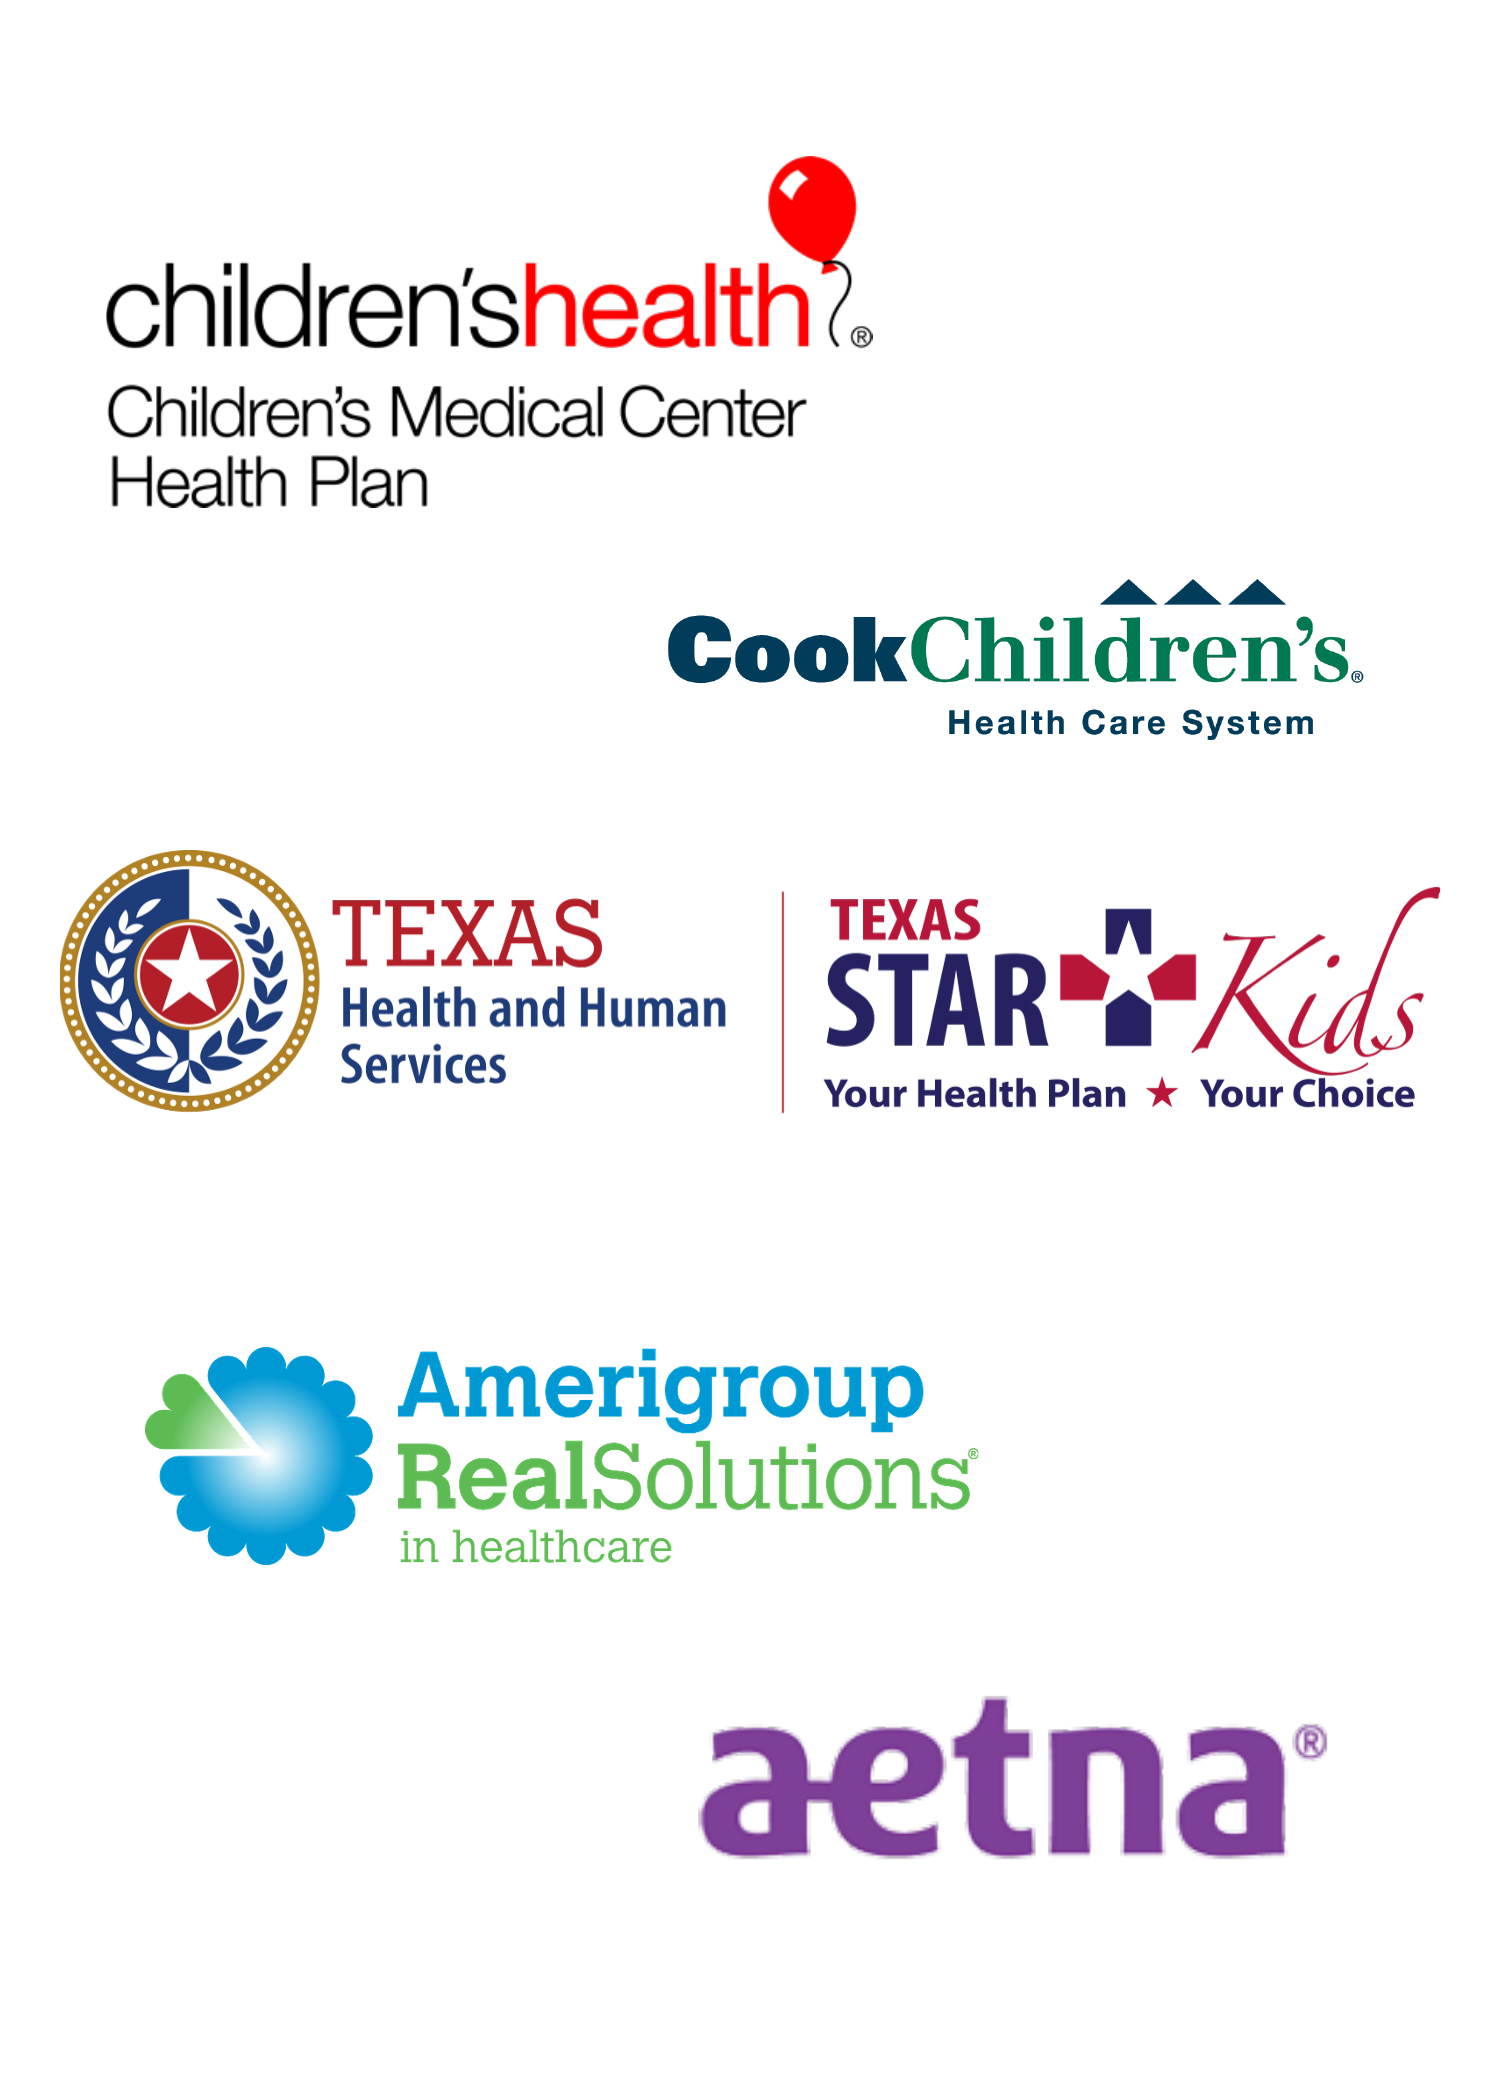 Medicaid - Dynamic Therapy is a licensed Home Health Agency and a participating provider with several Texas Medicaid/STAR Kids Managed Care Organizations (MCOs).